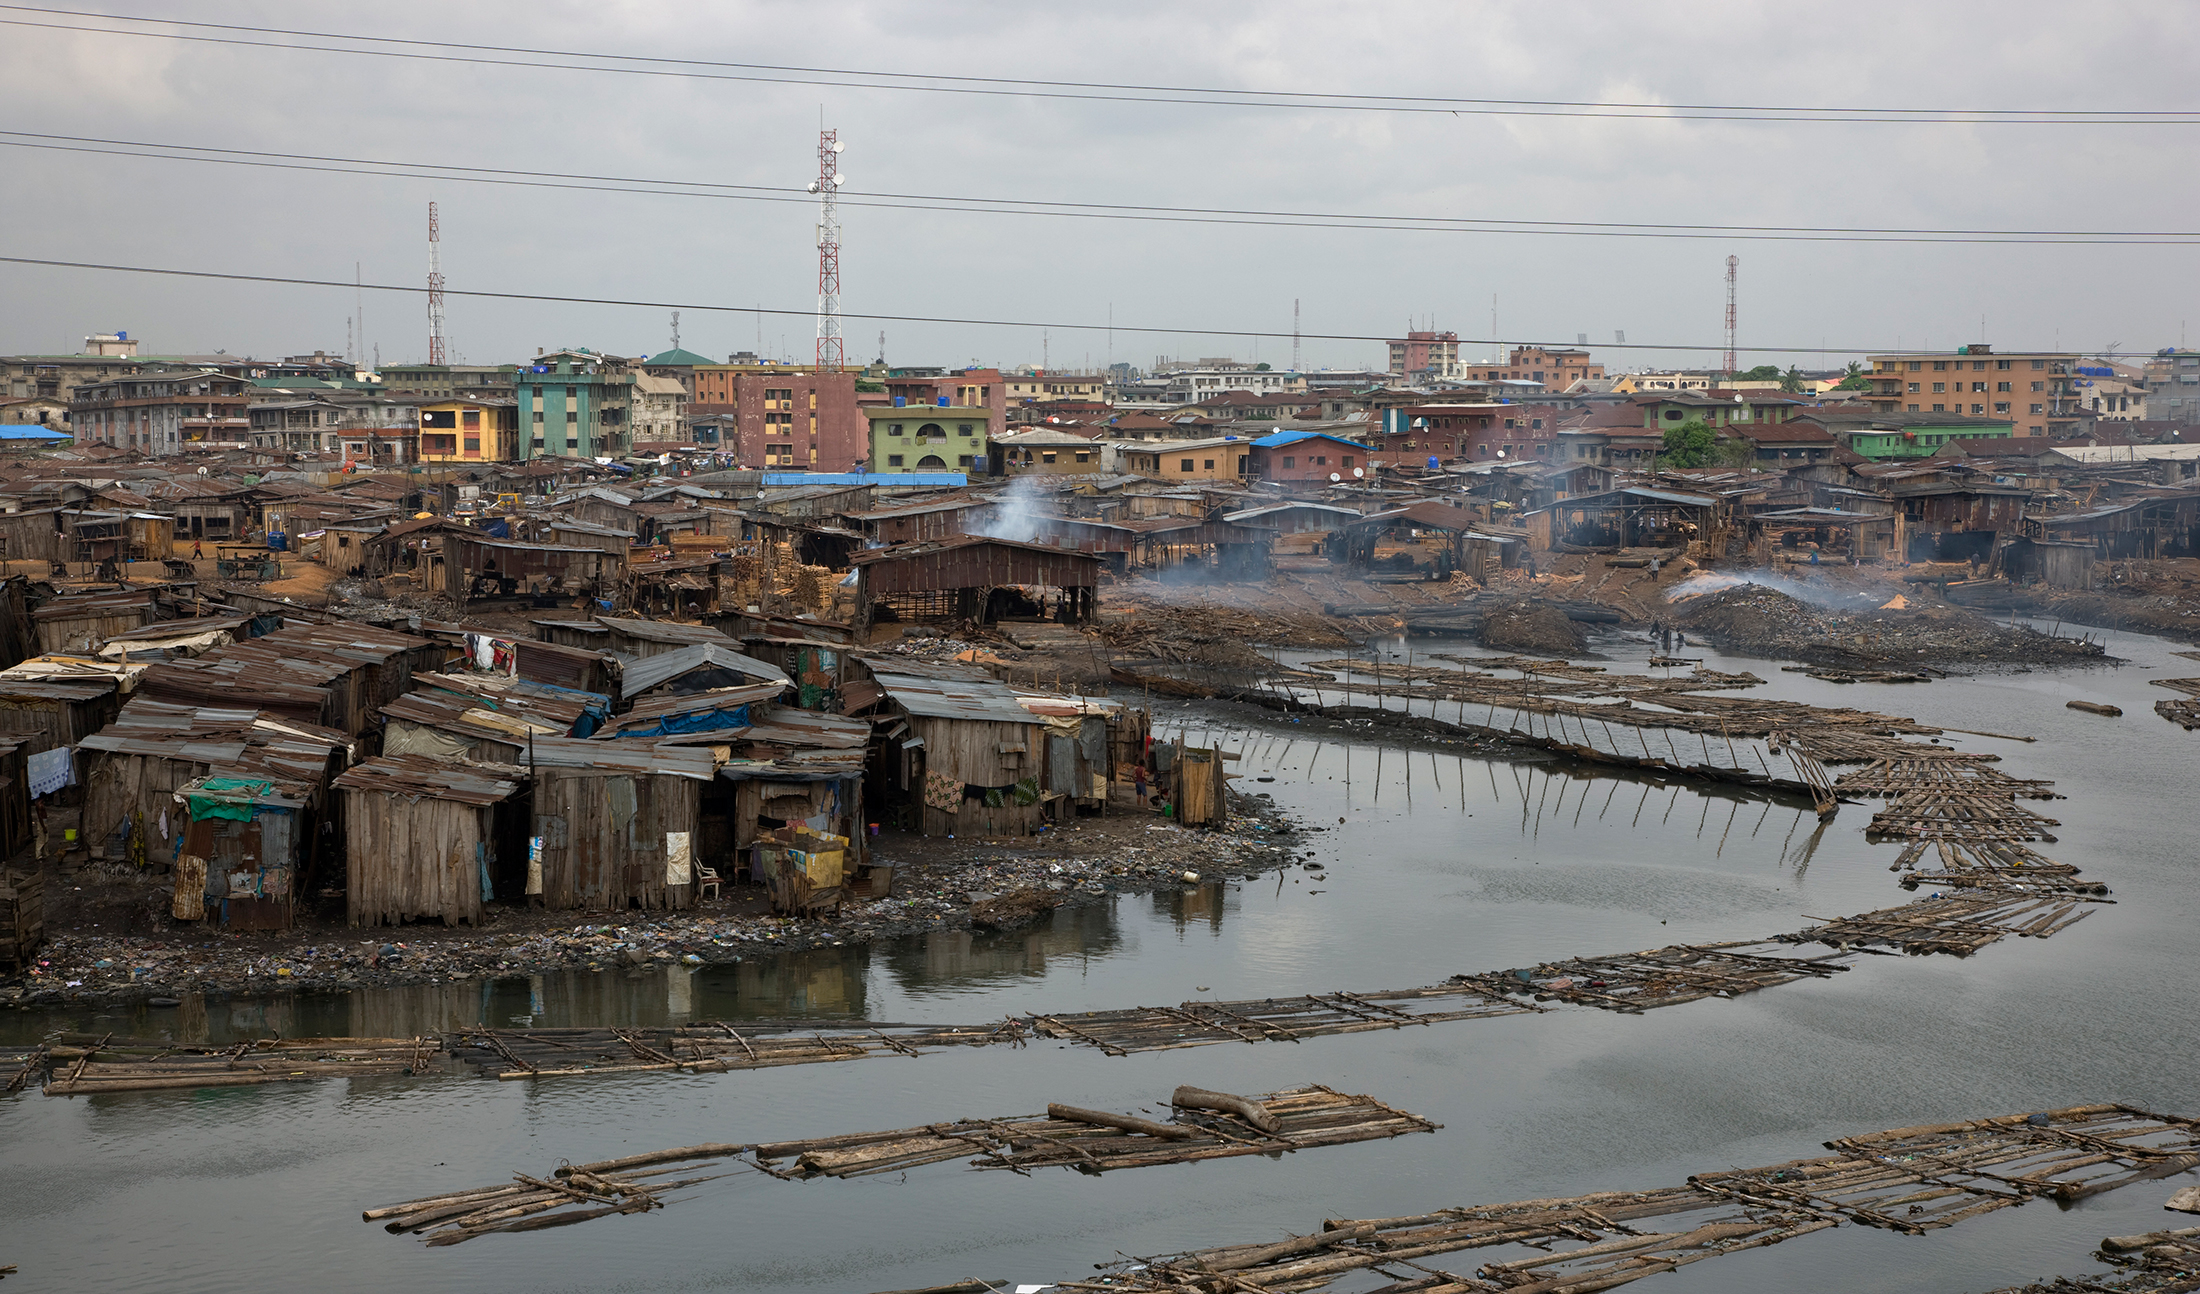 Slums in Lagos, Nigeria. Overcrowding and homelessness in the country have resulted from its lack of adequate and affordable housing